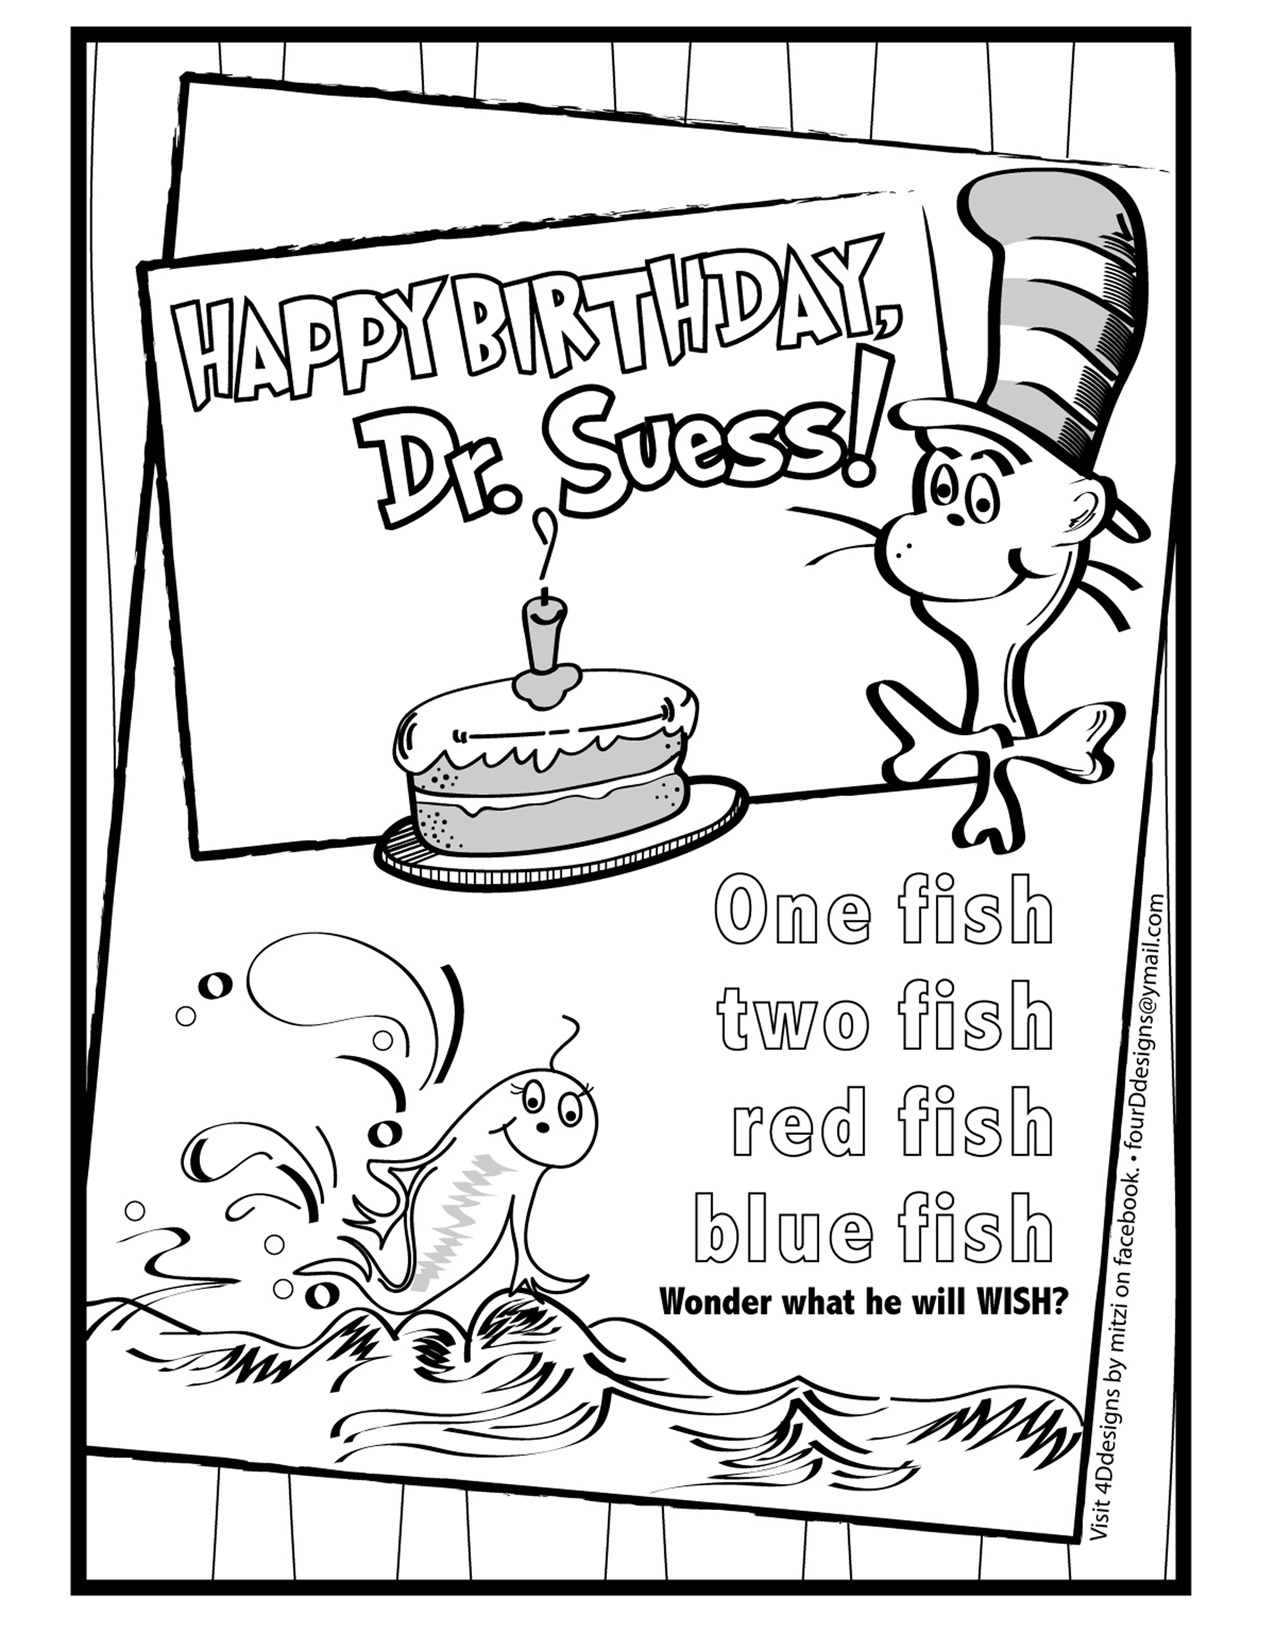 happy birthday dr seuss coloring sheets ; 6450d038a0d03ee9da9572608605ef5f